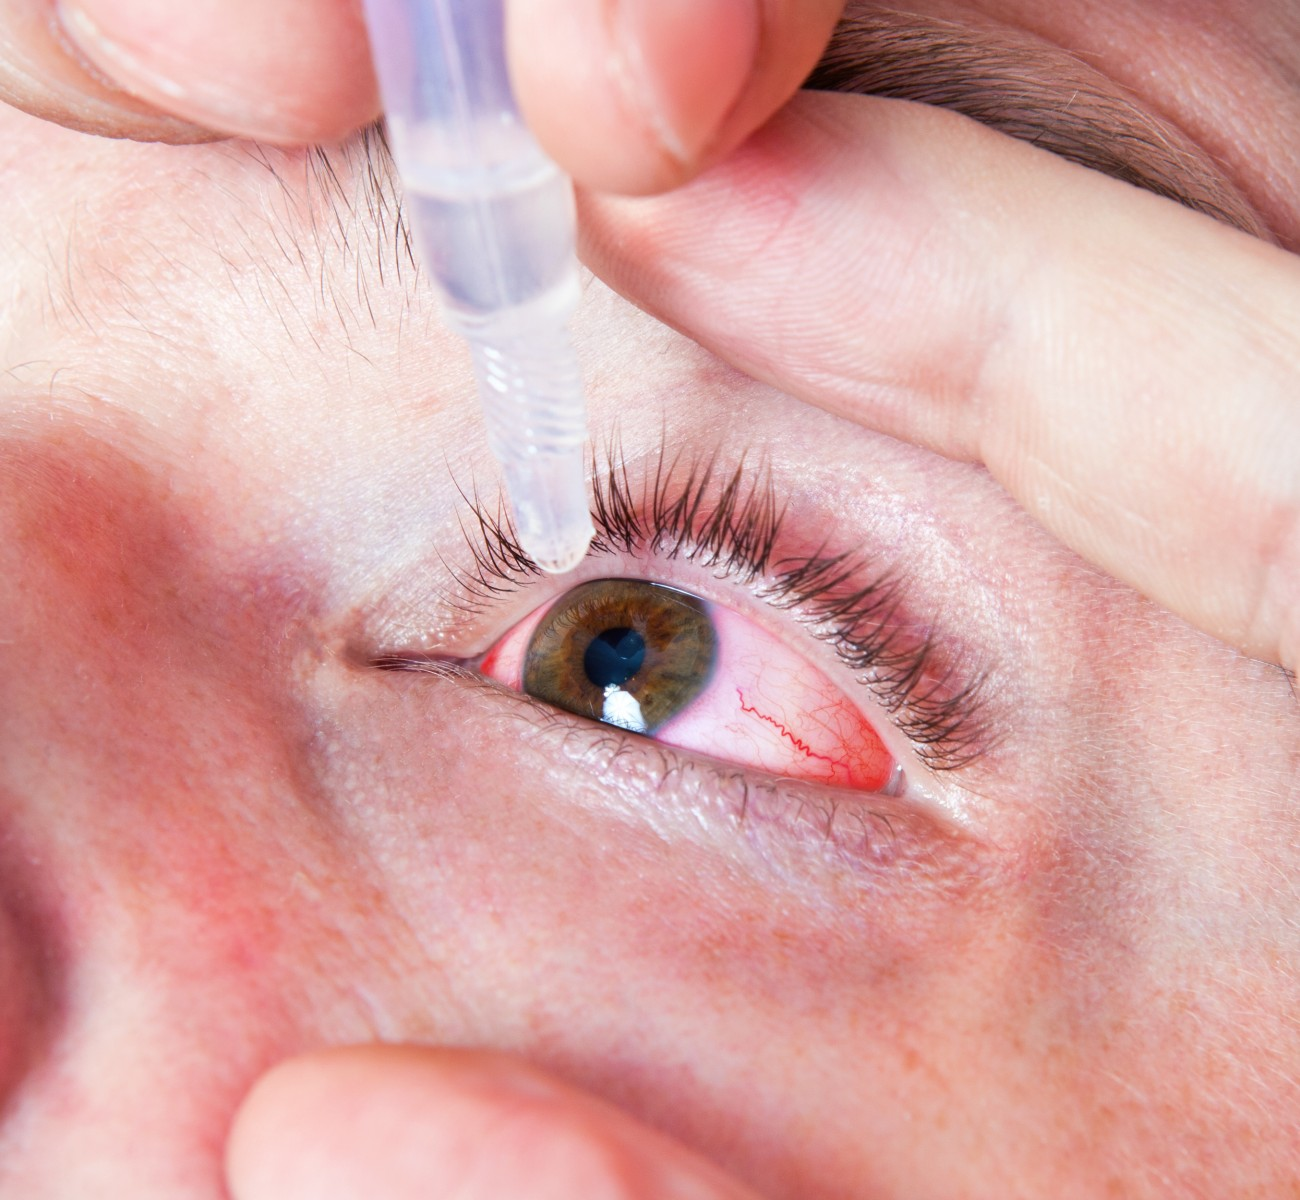 Novel Therapy Reveals Promising Phase 3 Clinical Trial Results For Post-Cataract Surgery